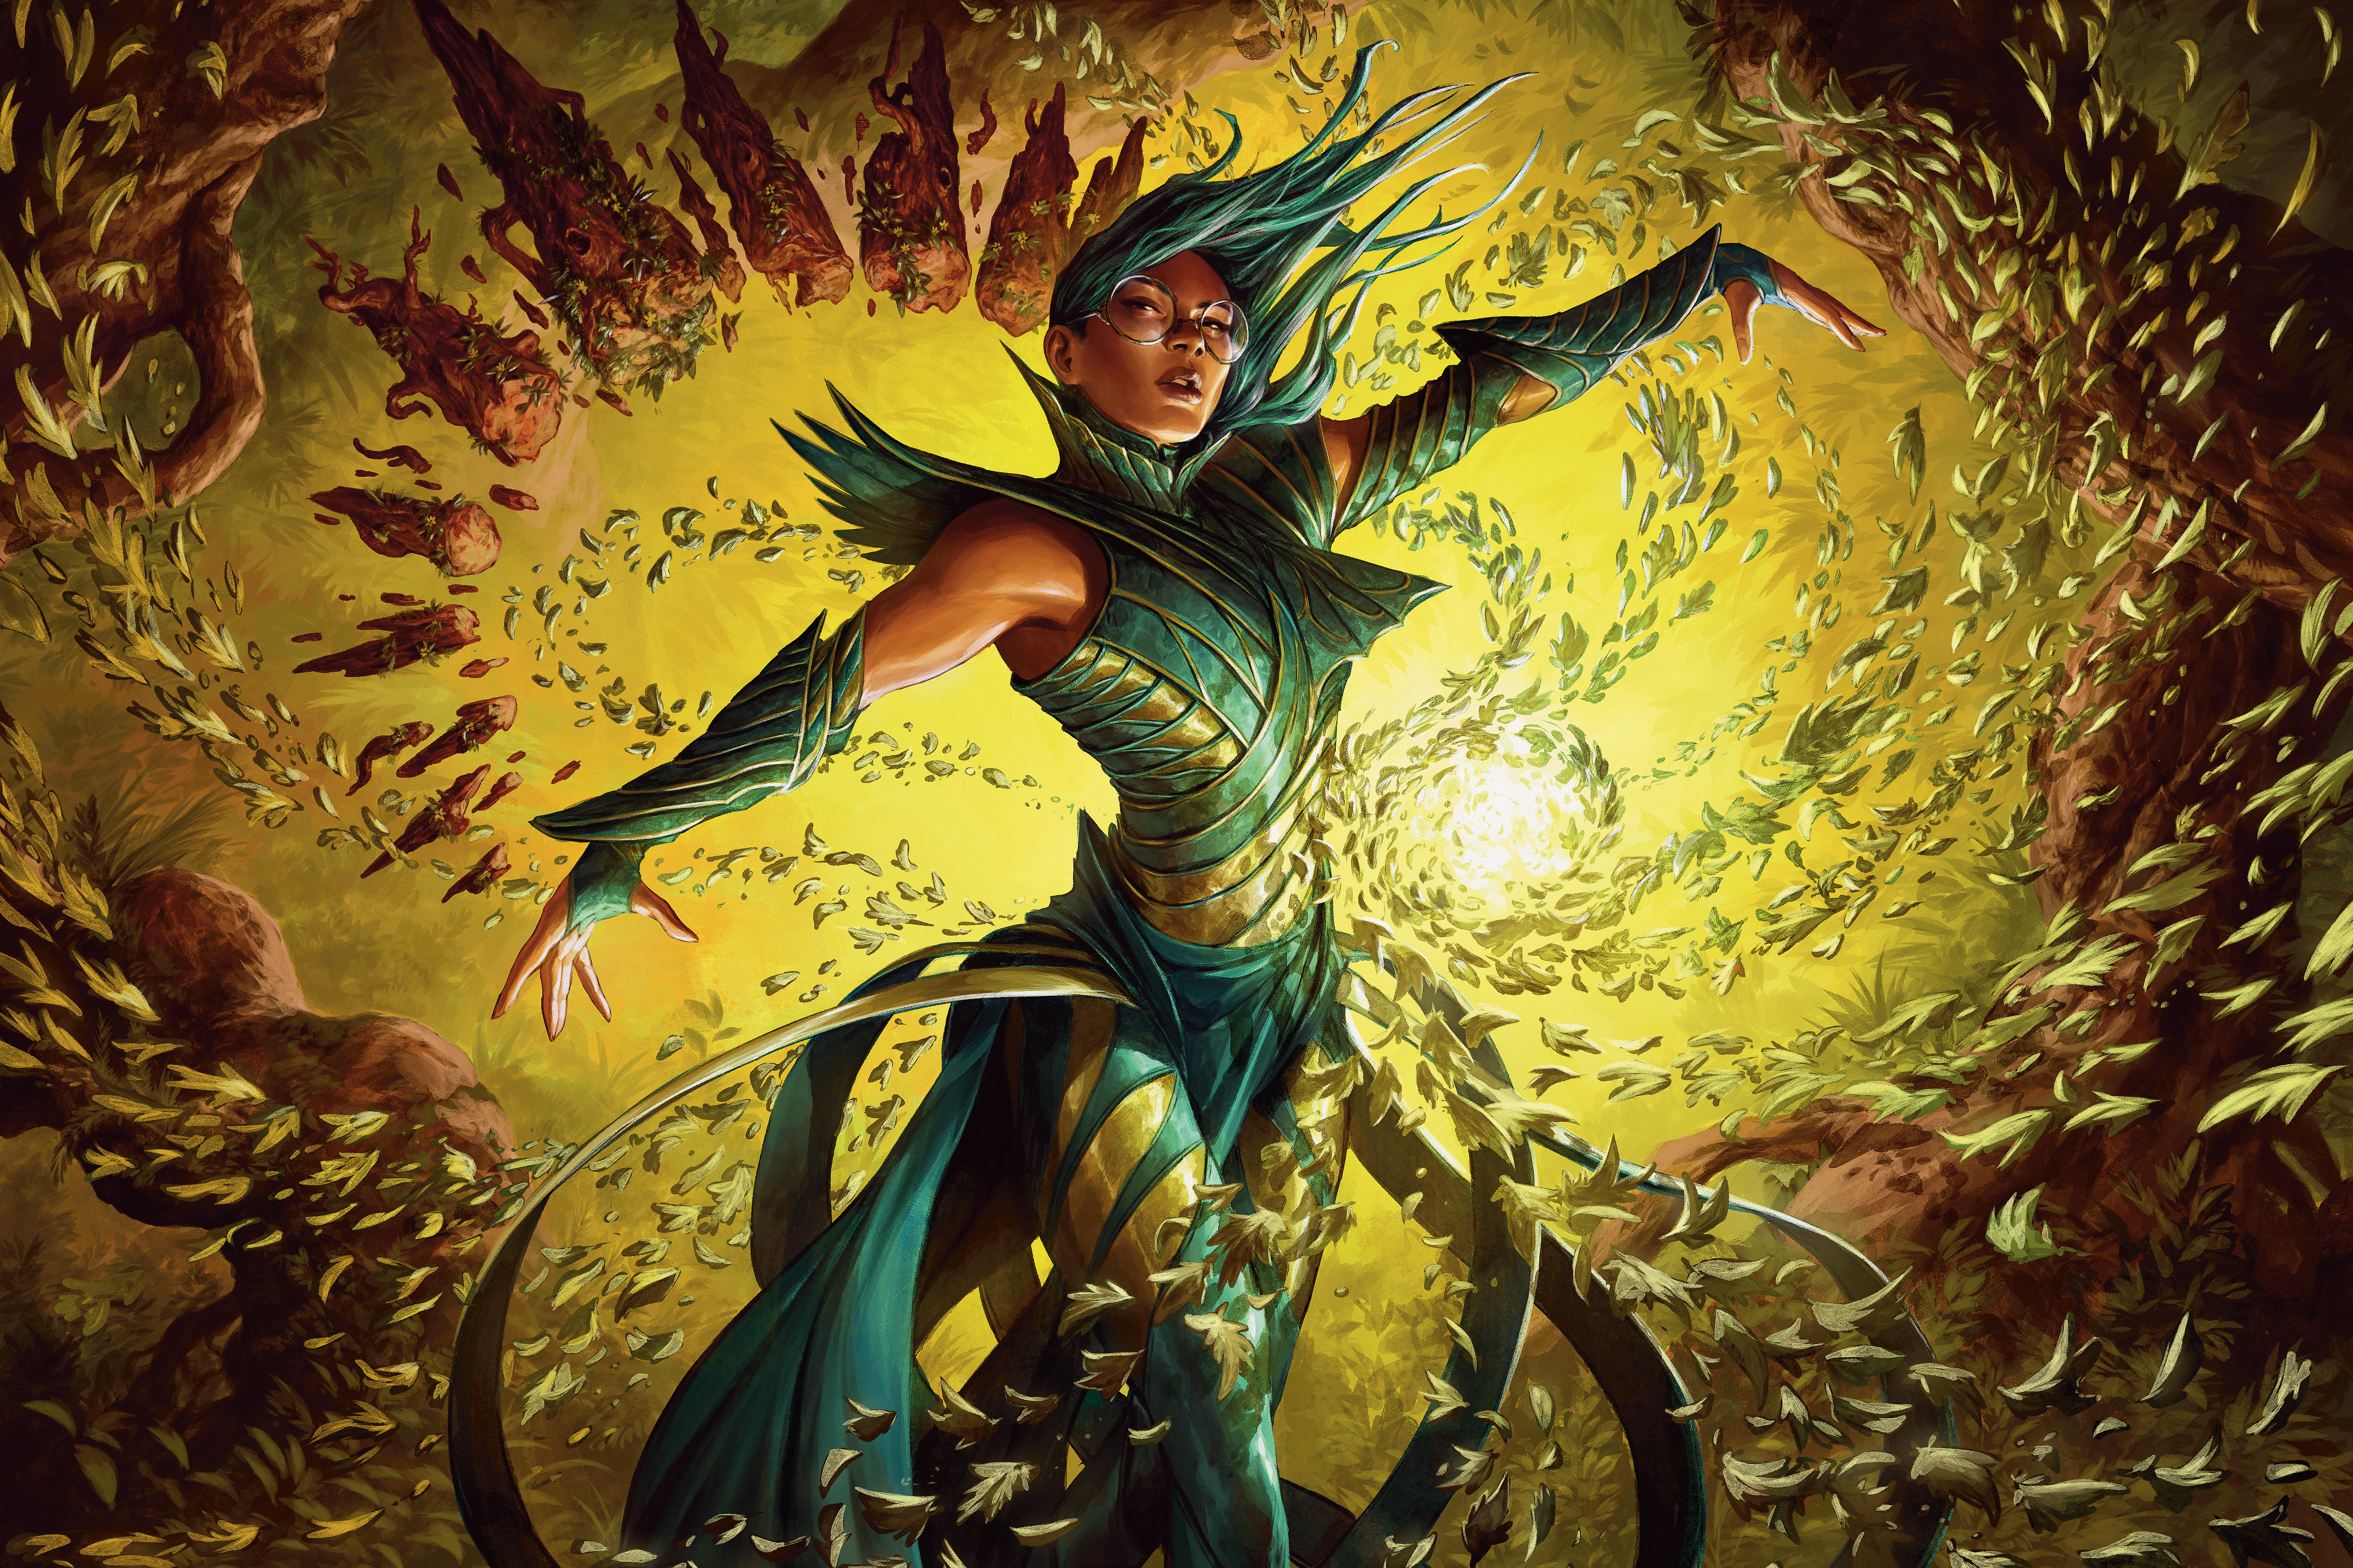 An armored woman stands inside a vortex or yellow stone shards.